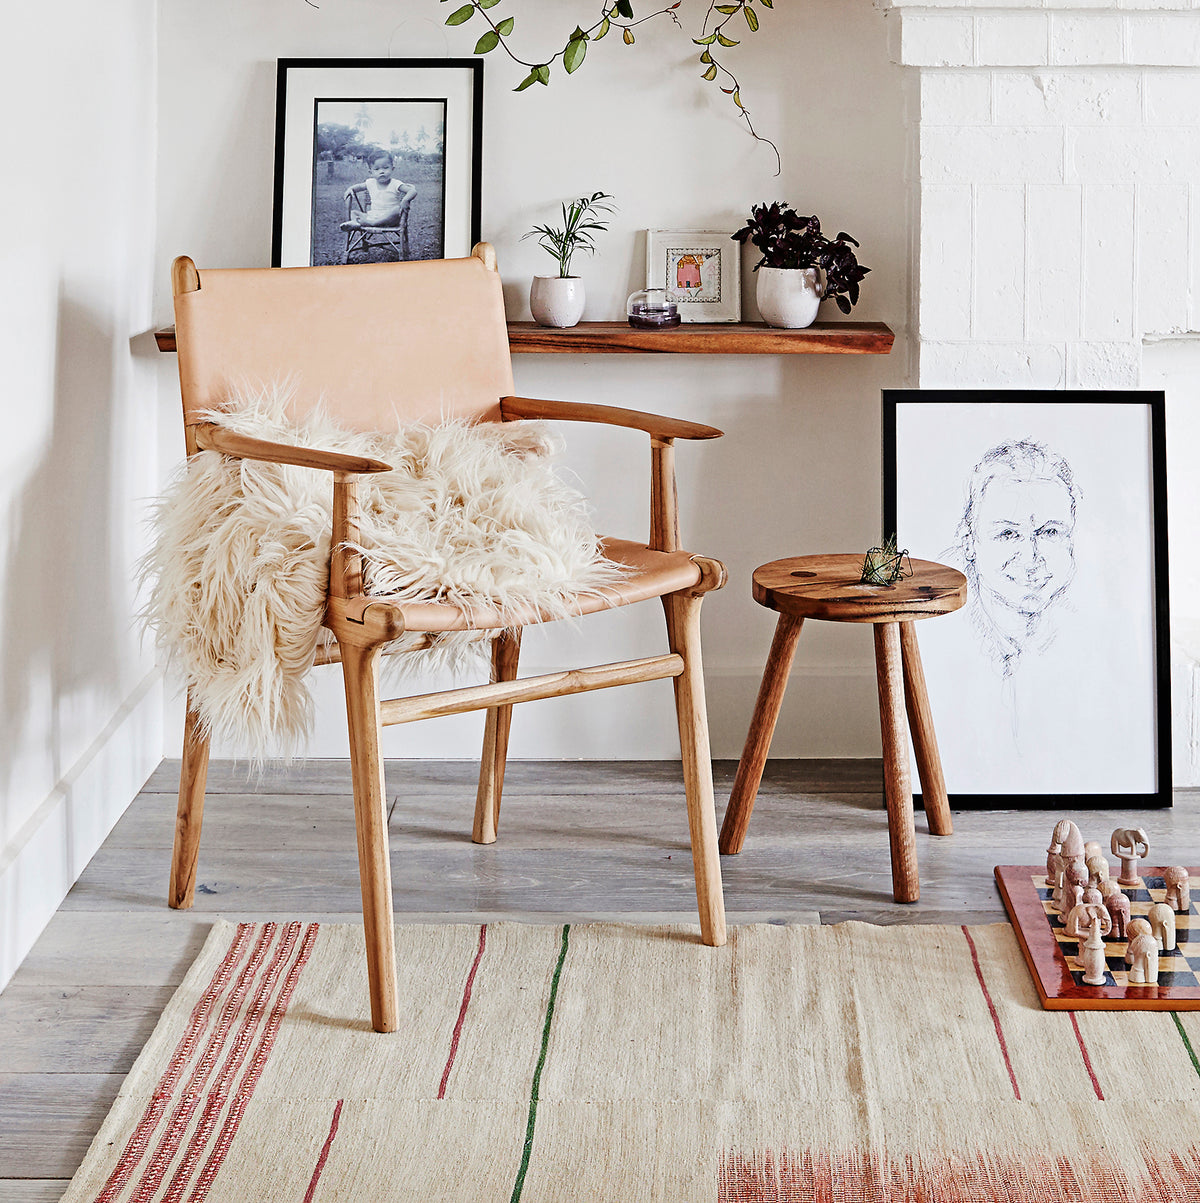 Minimalism Meets Whimsy in this Scandinavian Style Melbourne Bungalow